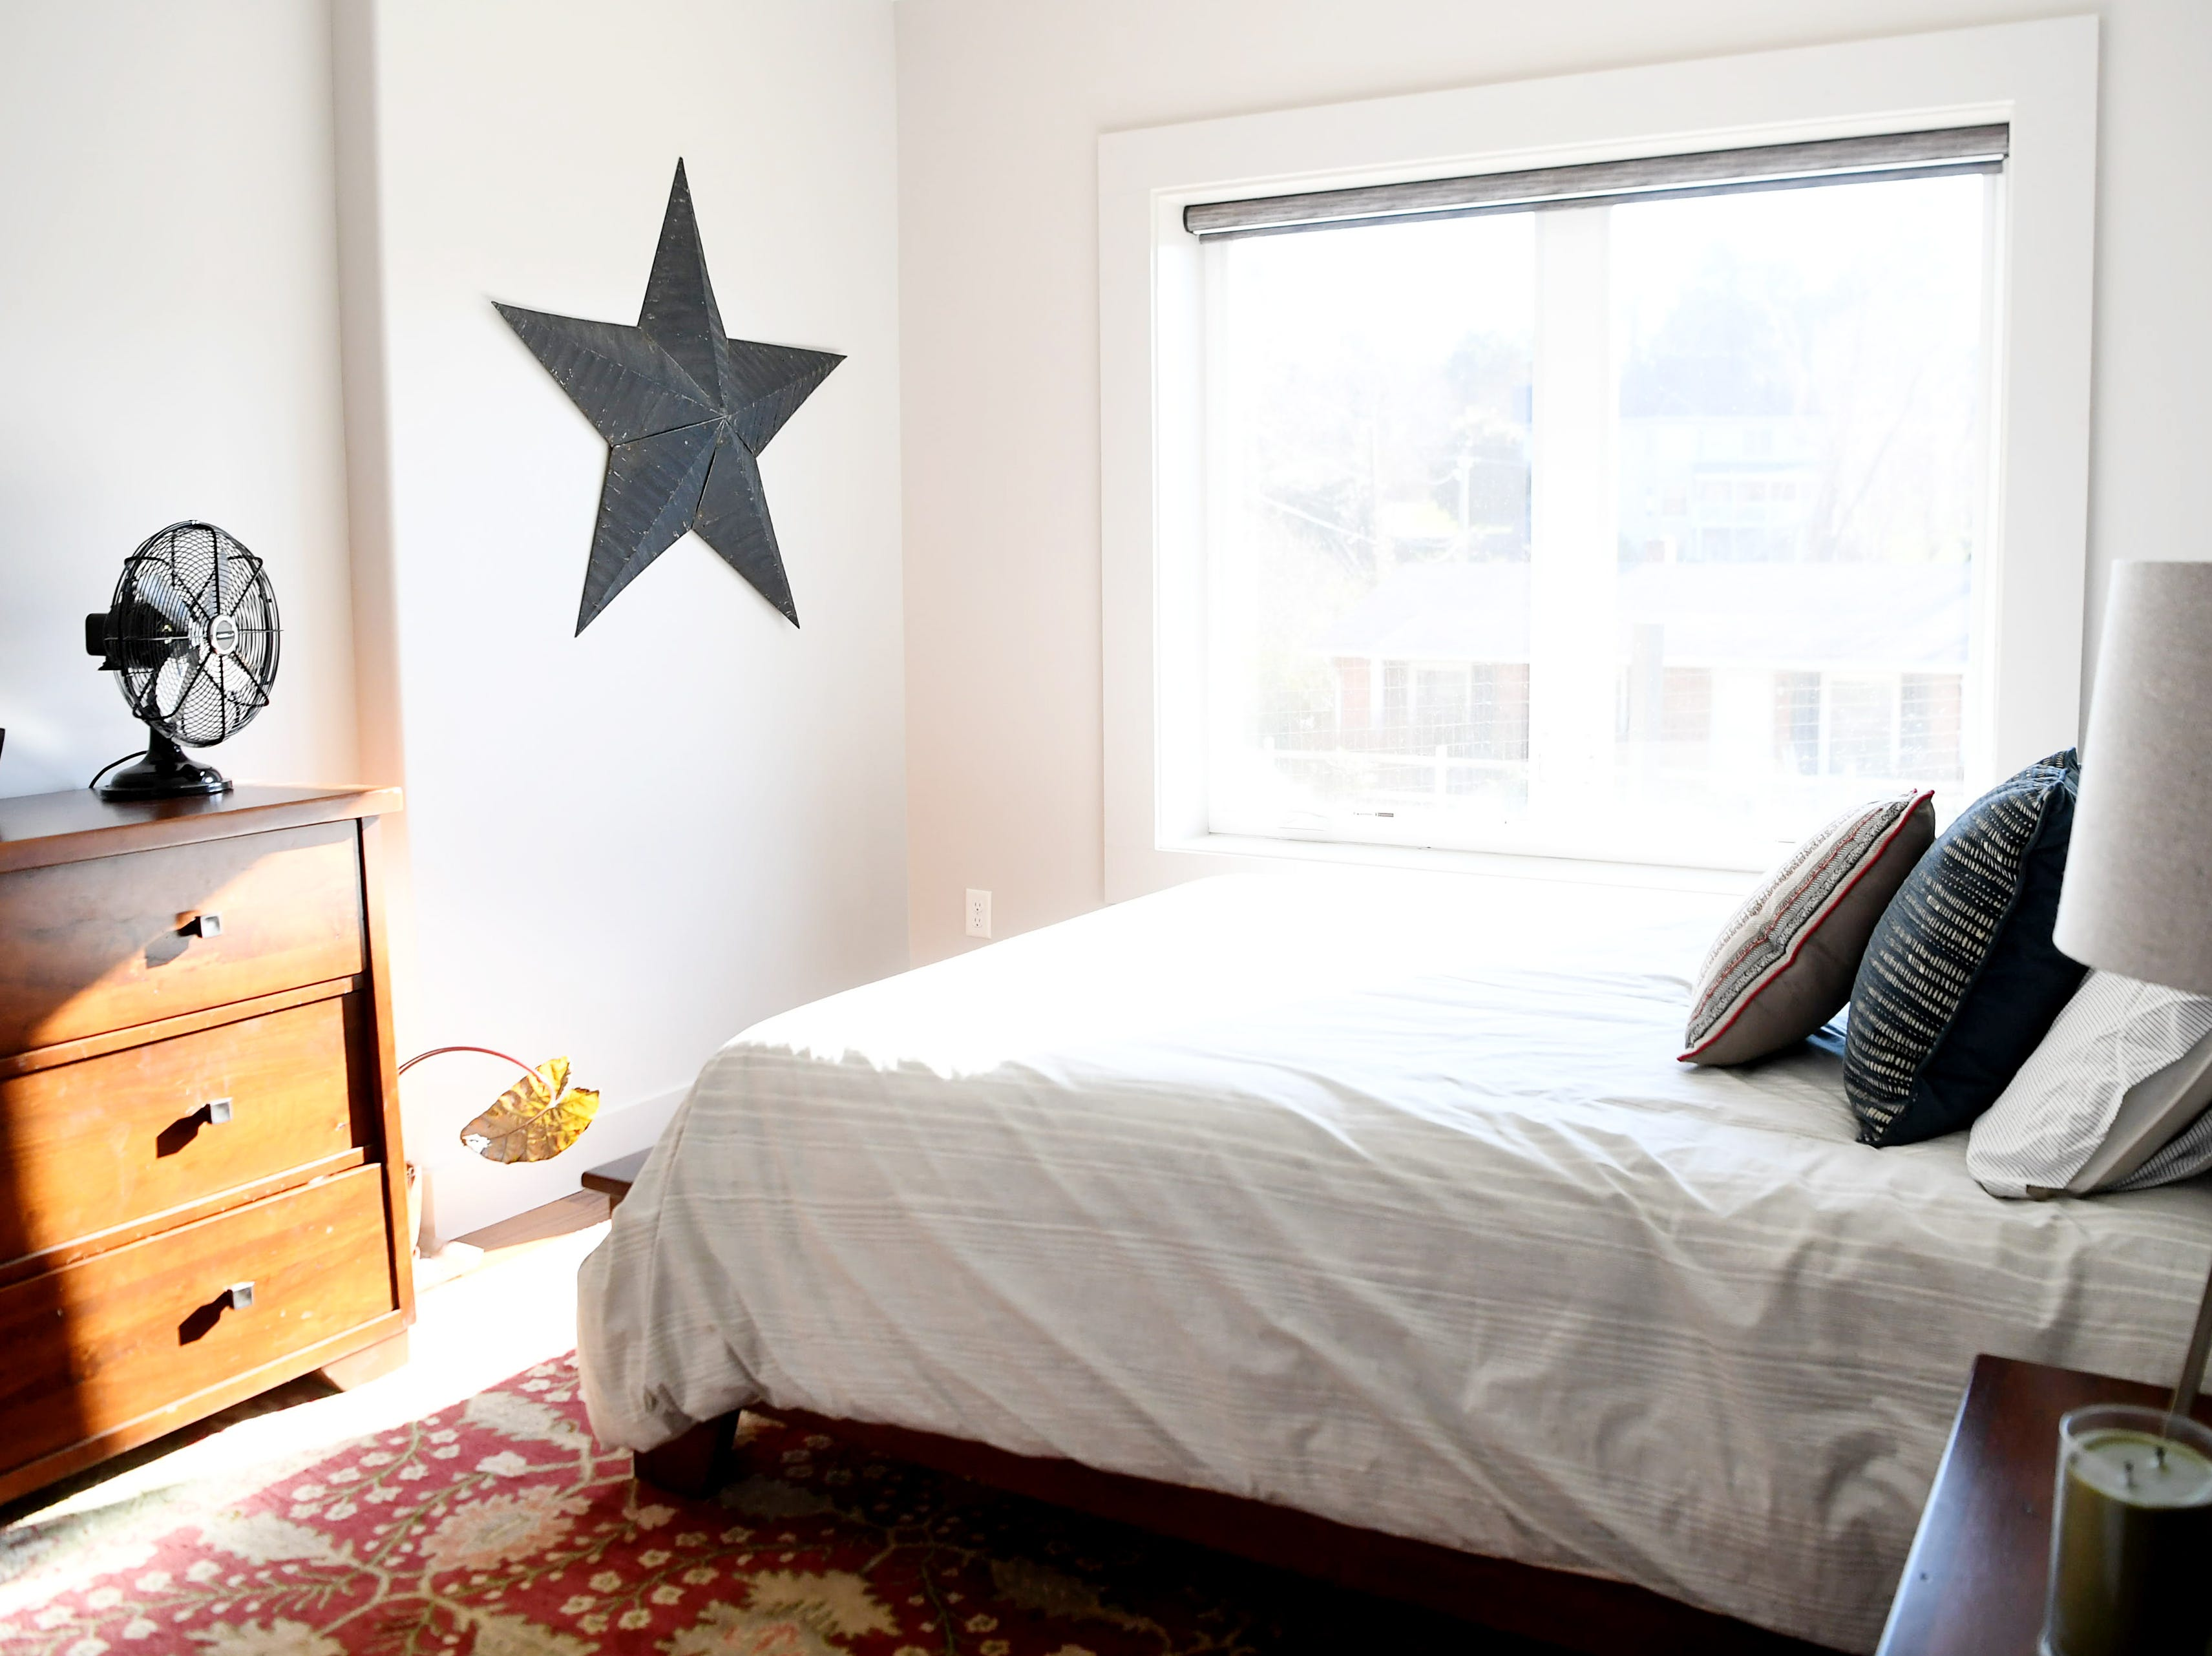 A bedroom in Matthew Rooks' Asheville home Jan. 8, 2019.